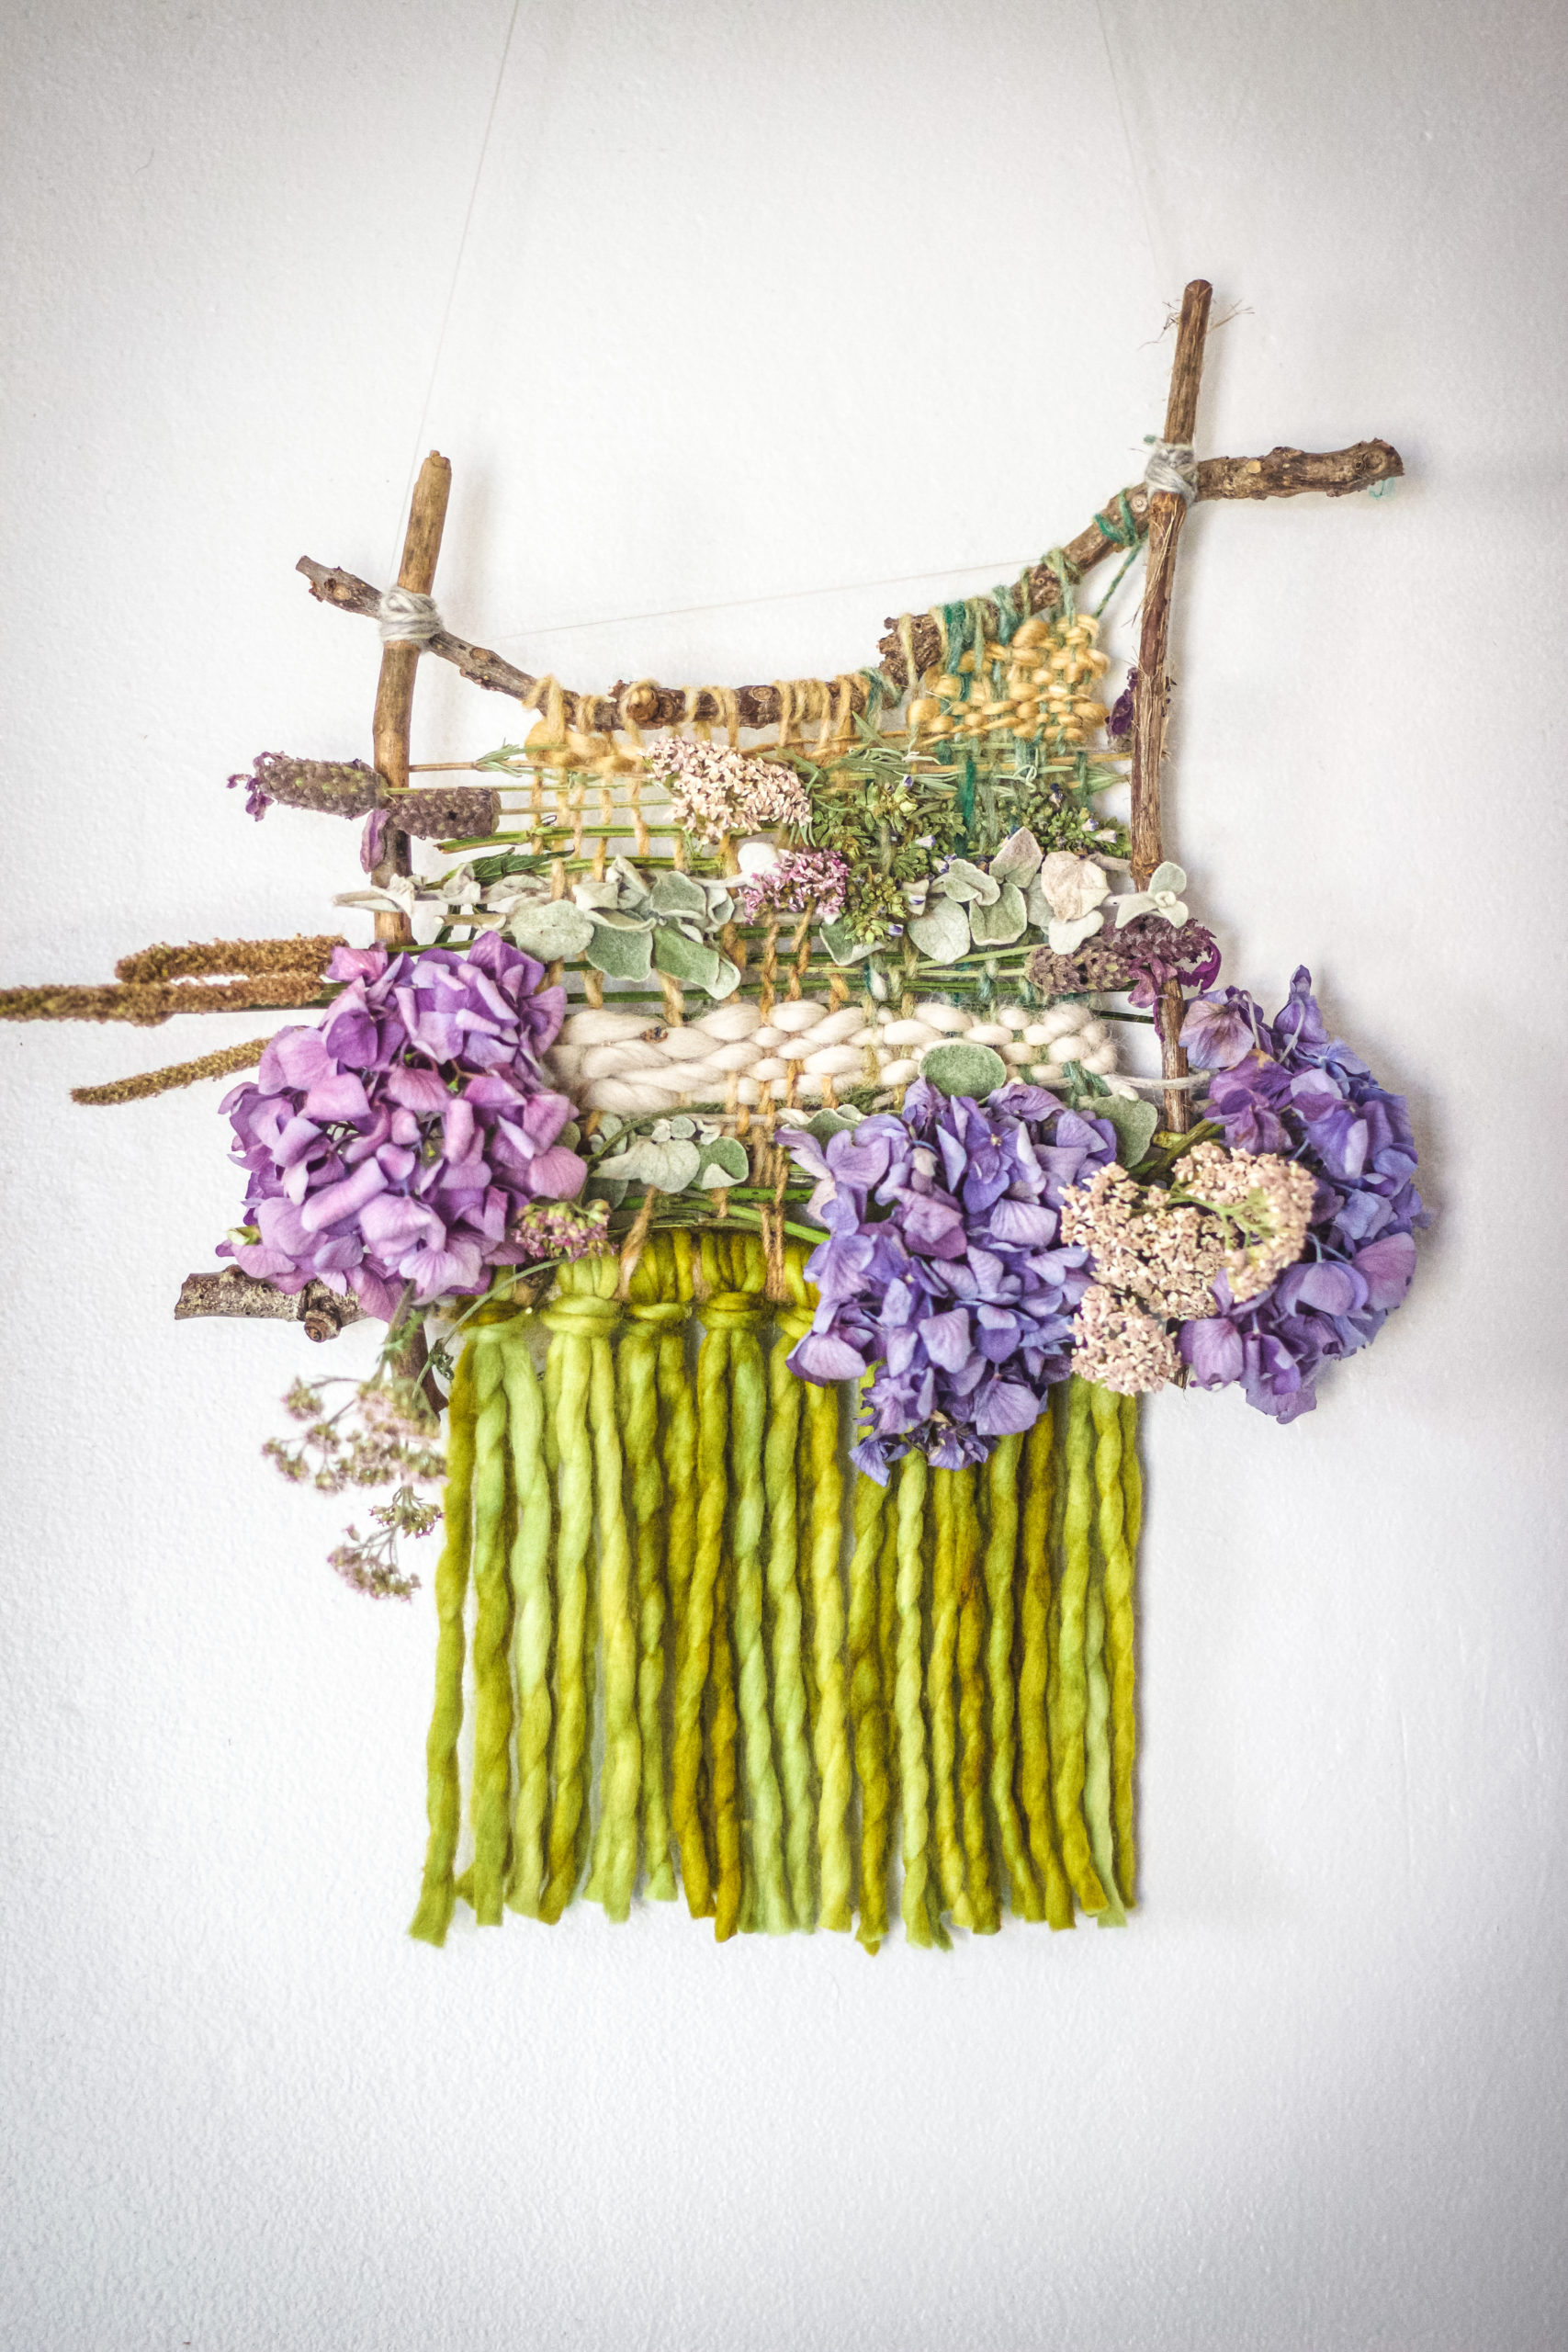 nature weaving project